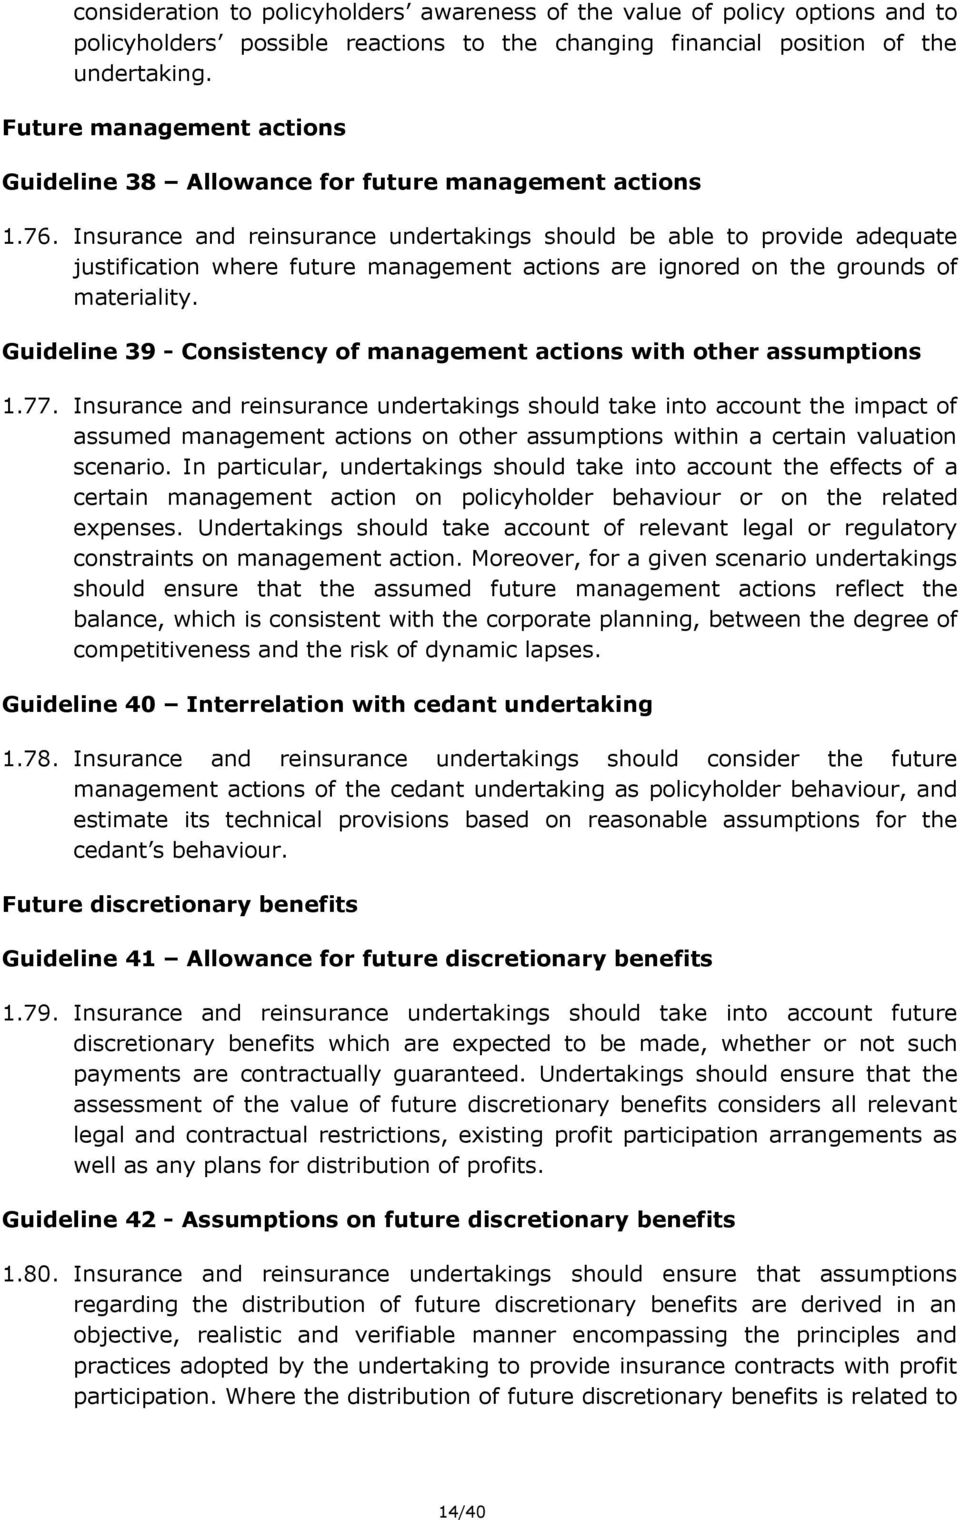 Insurance and reinsurance undertakings should be able to provide adequate justification where future management actions are ignored on the grounds of materiality.